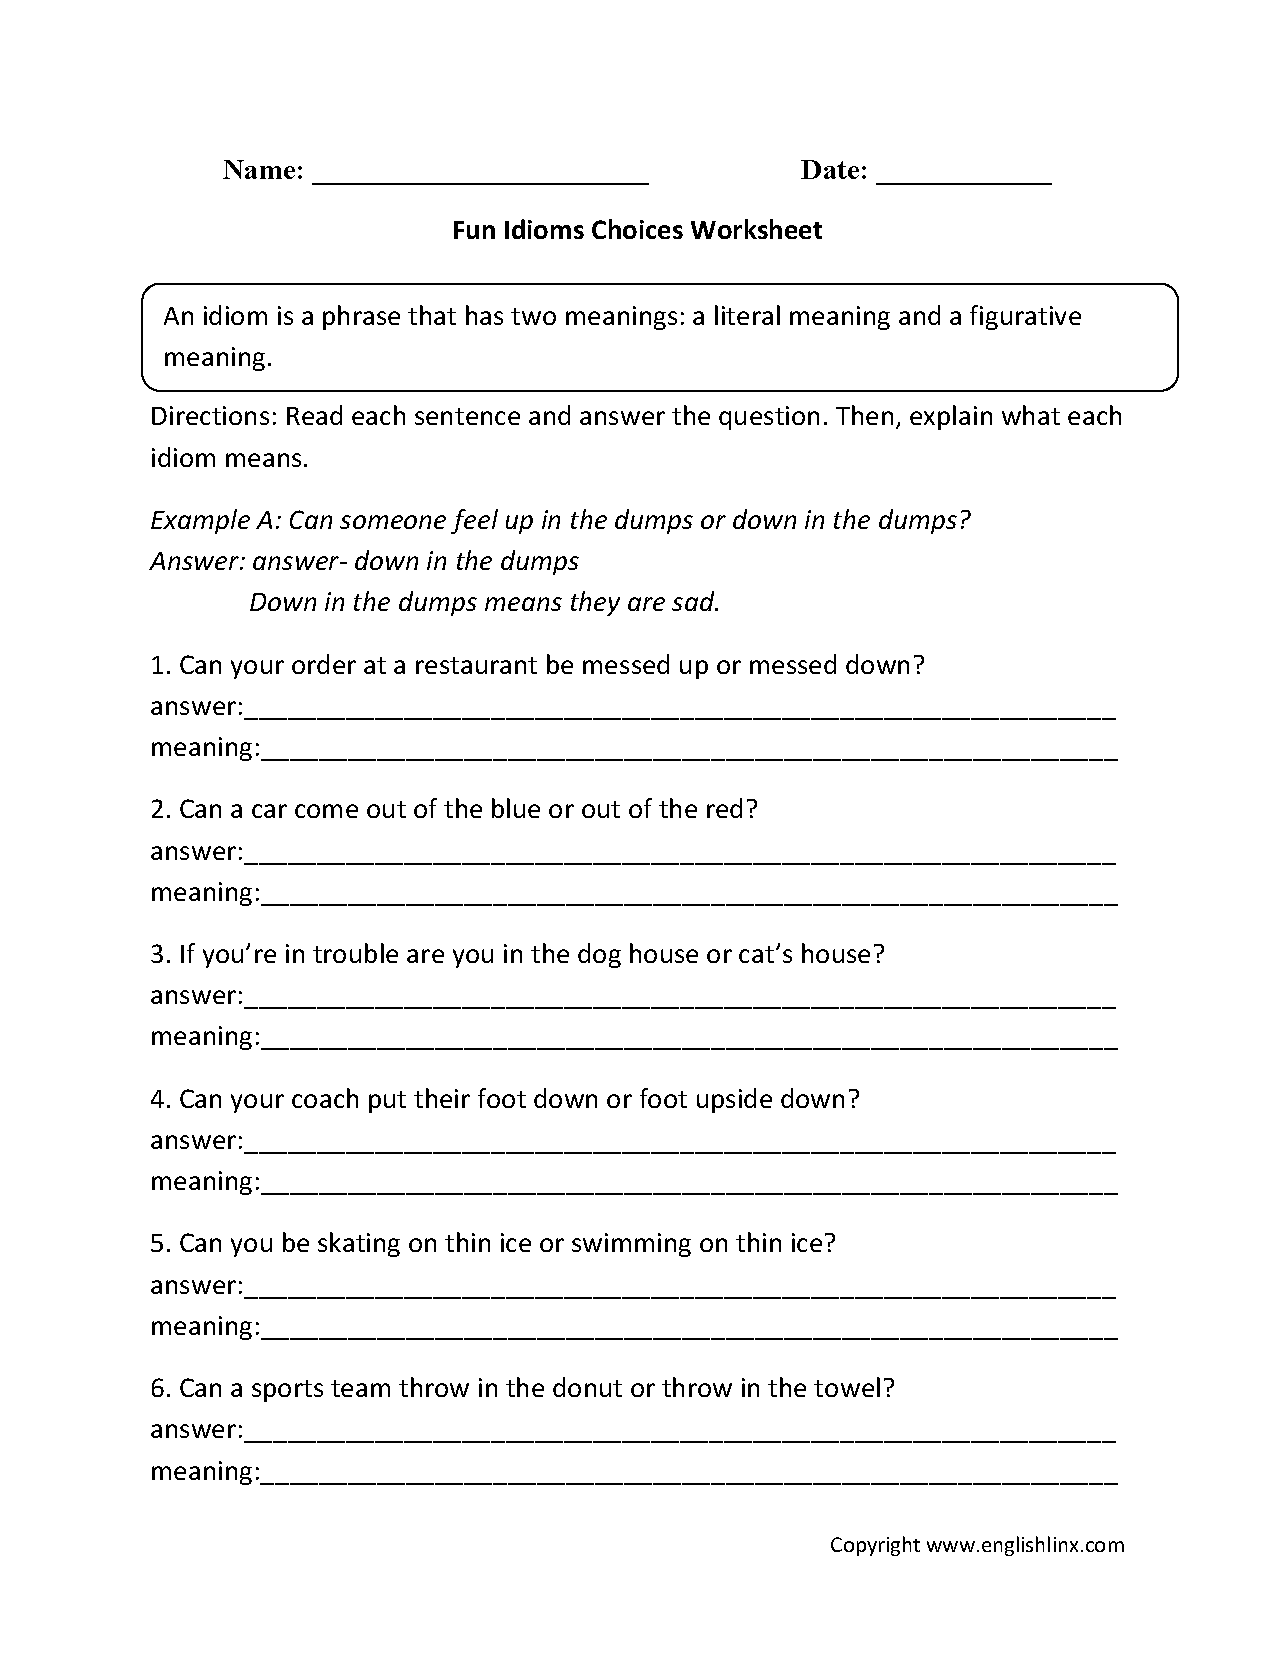 Fun Idioms Choices Worksheets